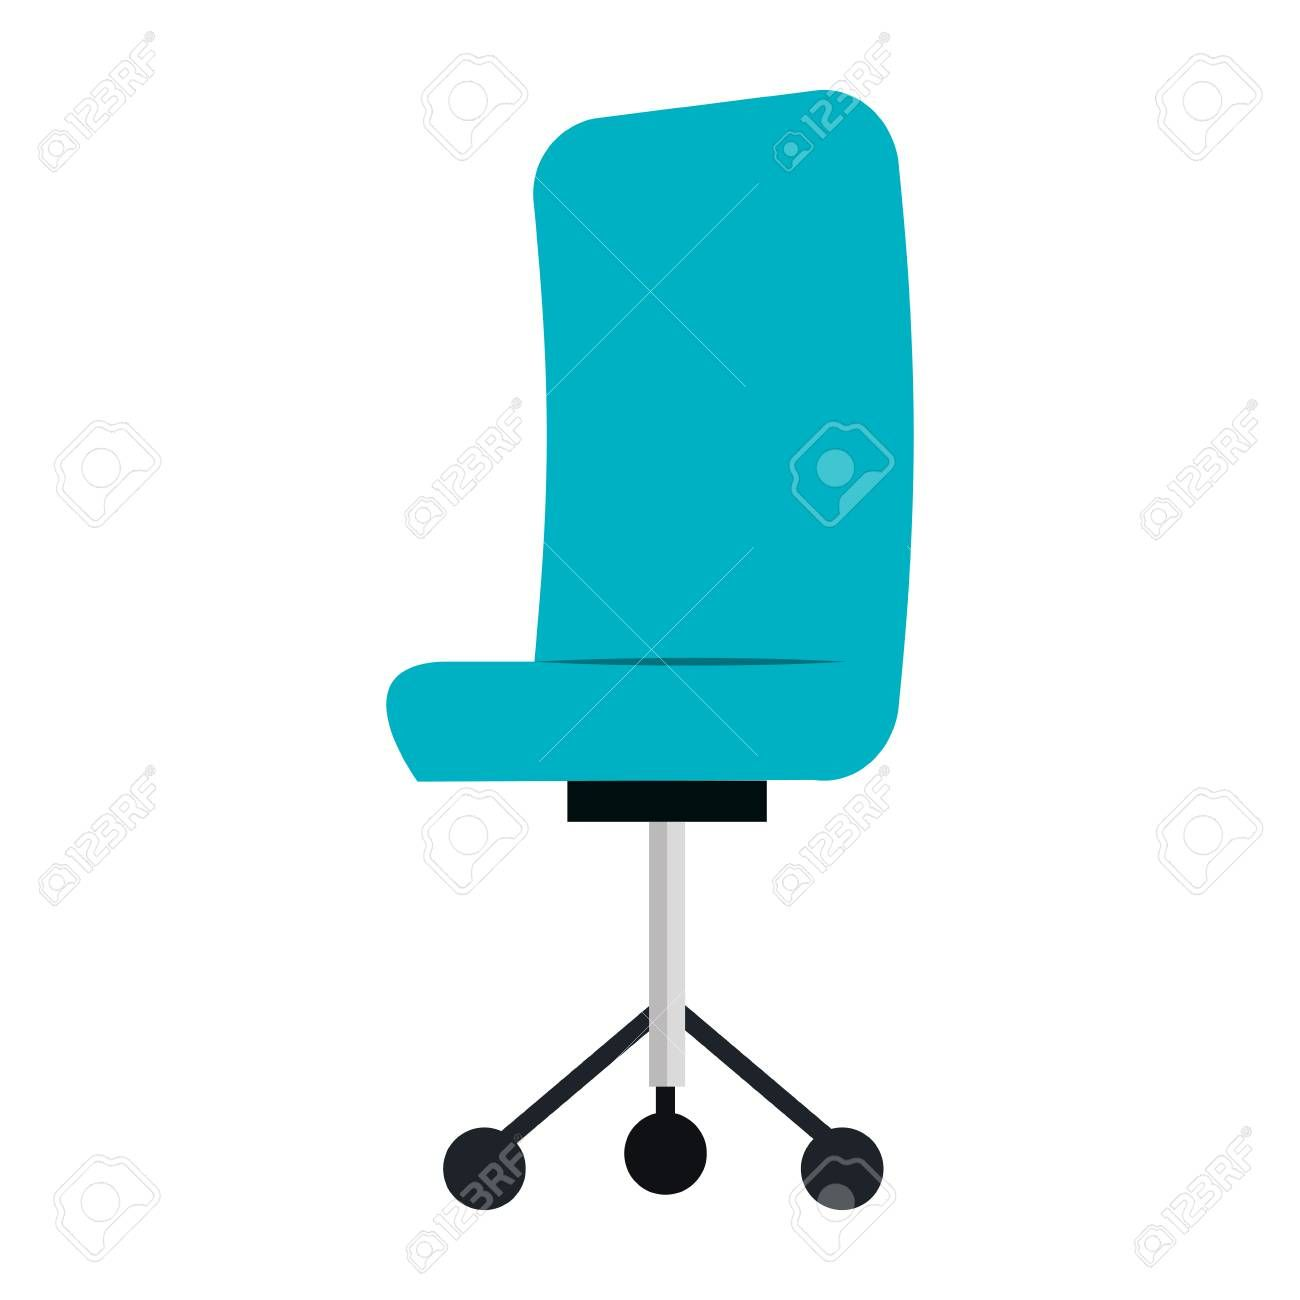 Office Chair Isolated Icon Vector Illustration Design Spon Isolated Chair Office Icon Vector Illustration Design Office Chair Illustration Design